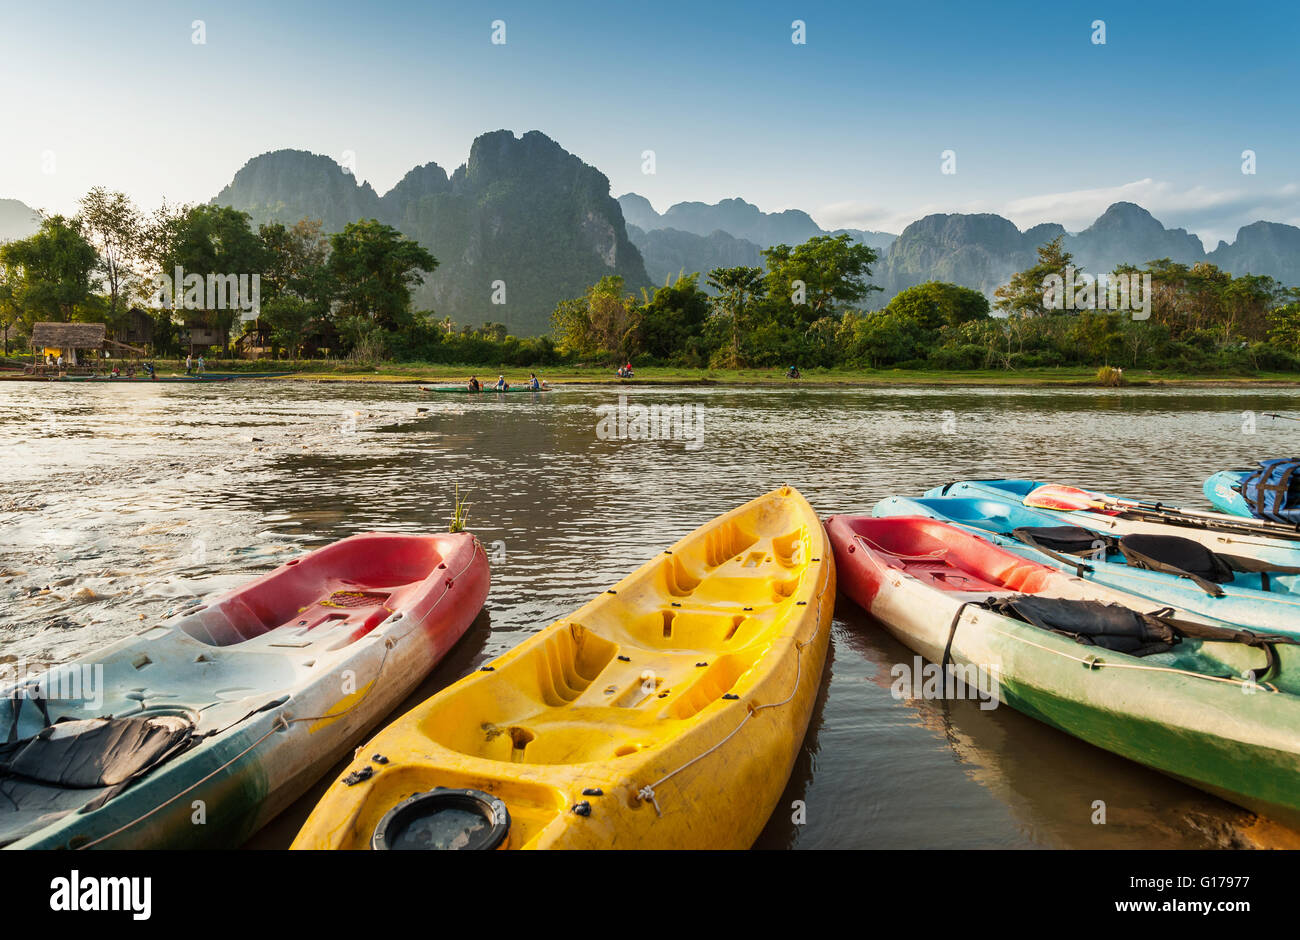 kayak boats in Nam Song river at Vang Vieng, Laos - Stock Image